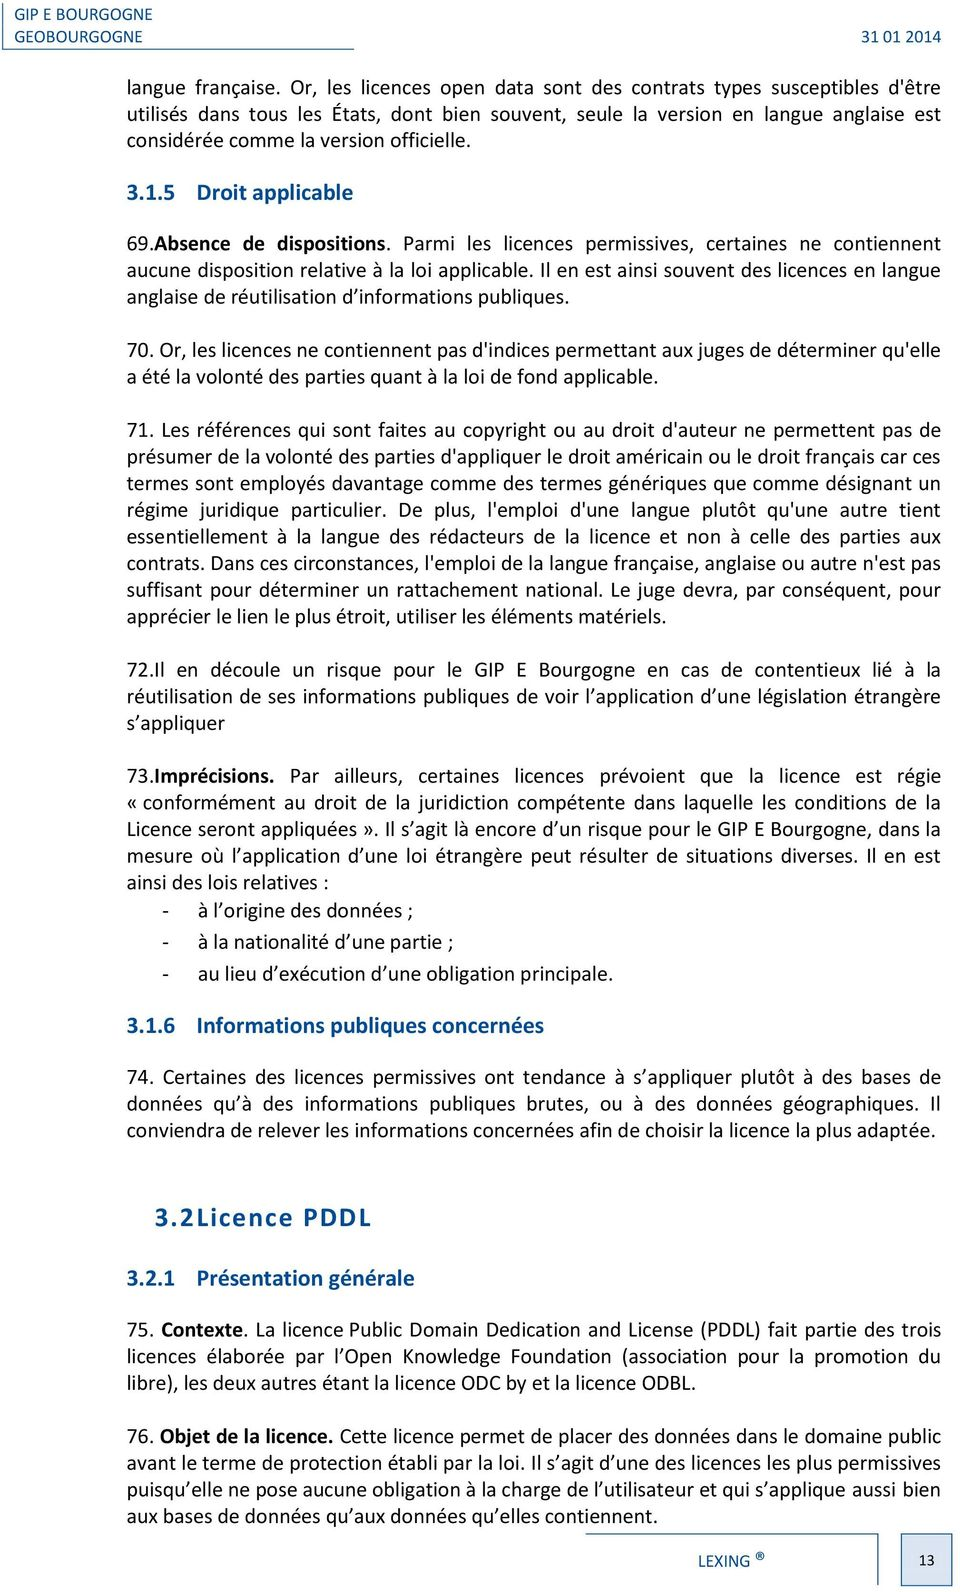 3.1.5 Droit applicable 69.Absence de dispositions. Parmi les licences permissives, certaines ne contiennent aucune disposition relative à la loi applicable.